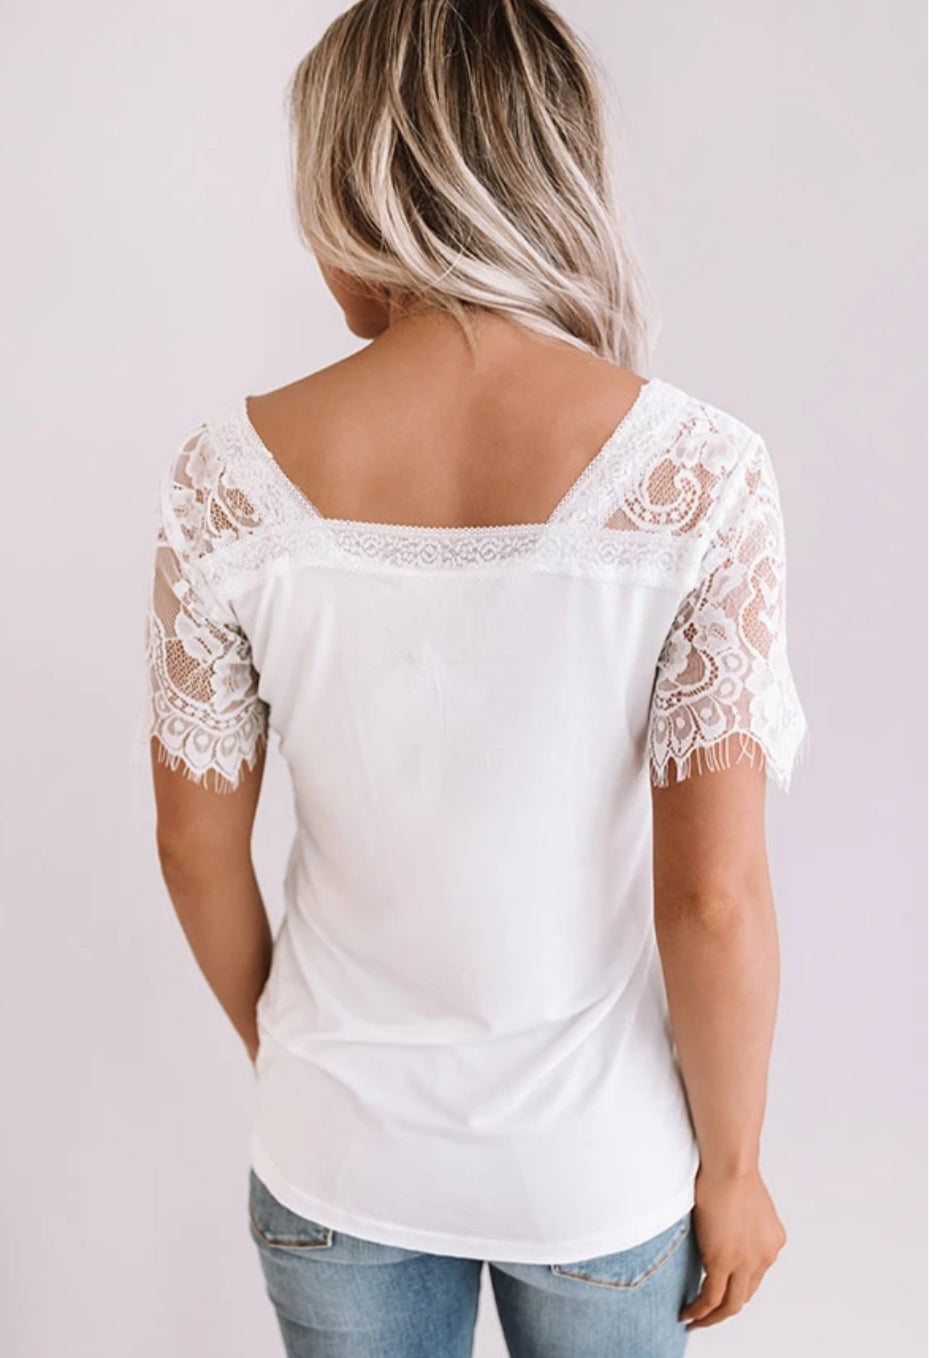 Sweet Side Lace V-Neck Top-White S-2XL